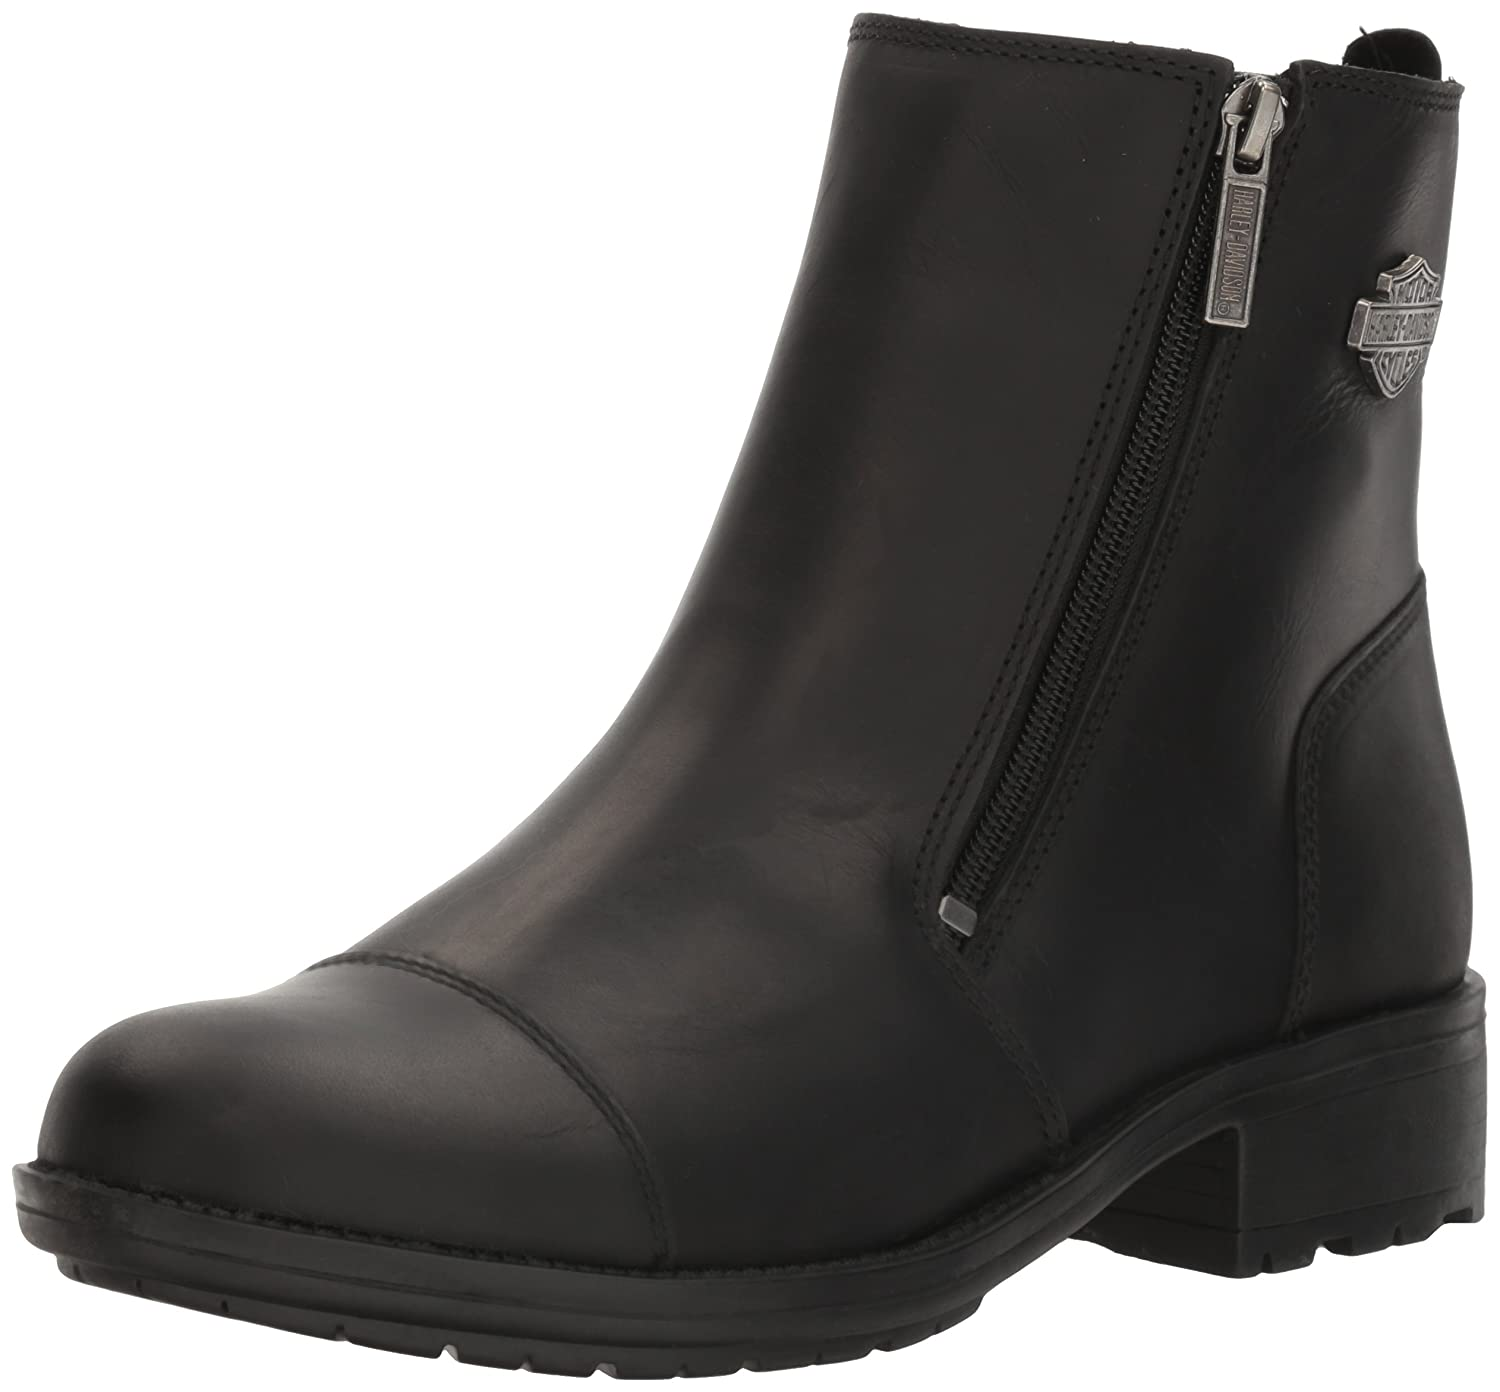 Harley-Davidson Women's Senter Work Boot B01KVUTEEQ 6 B(M) US|Black